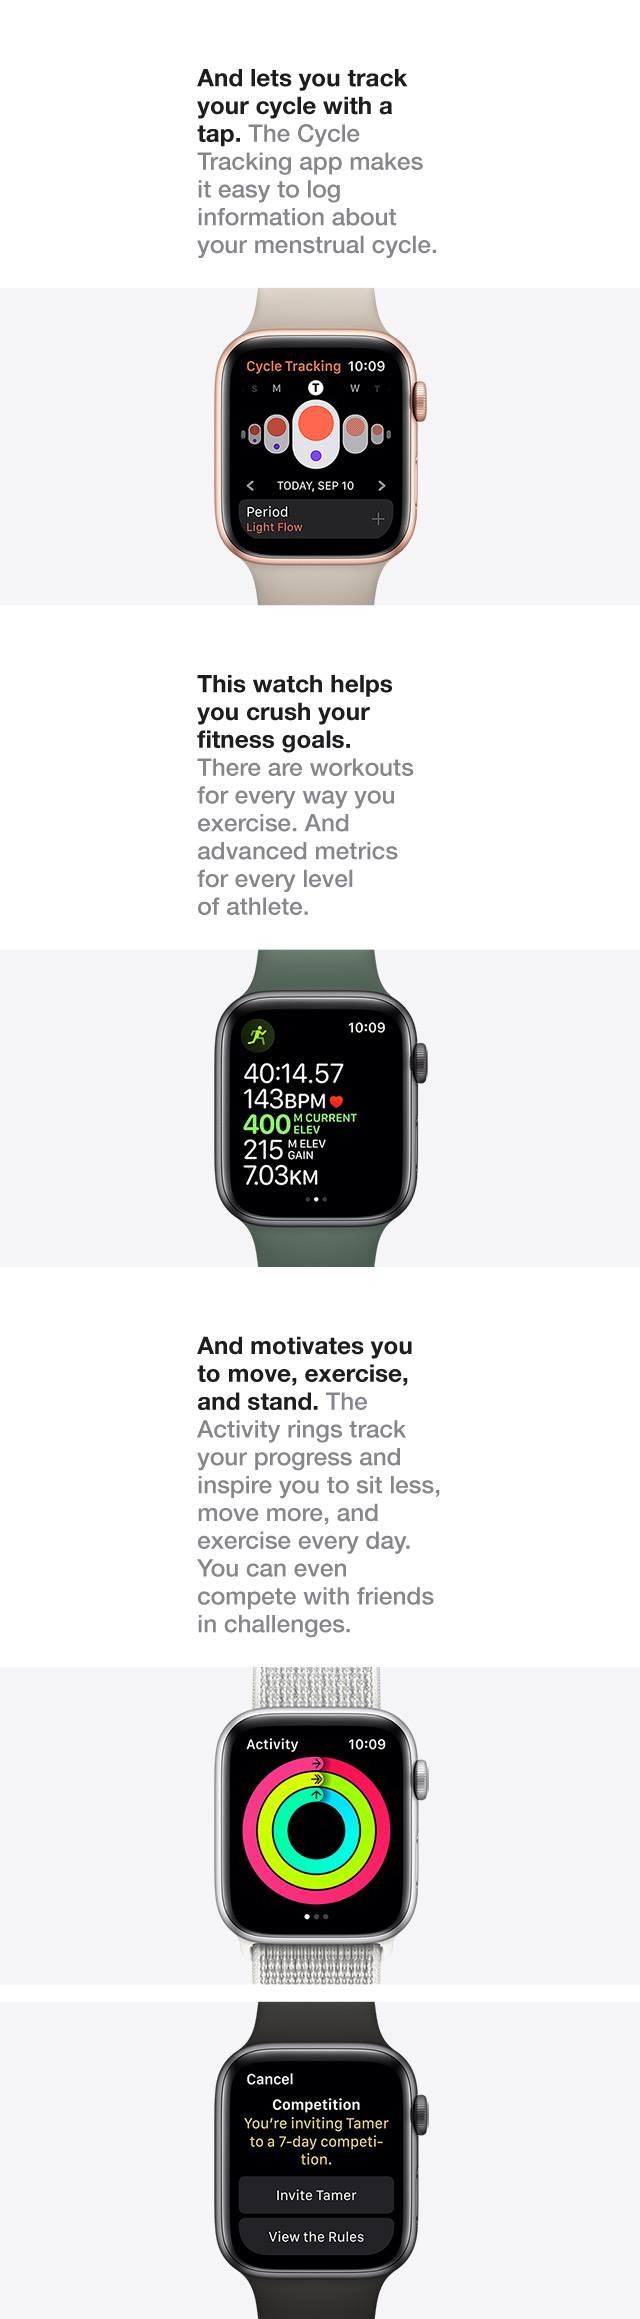 And lets you track your cycle with a tap.